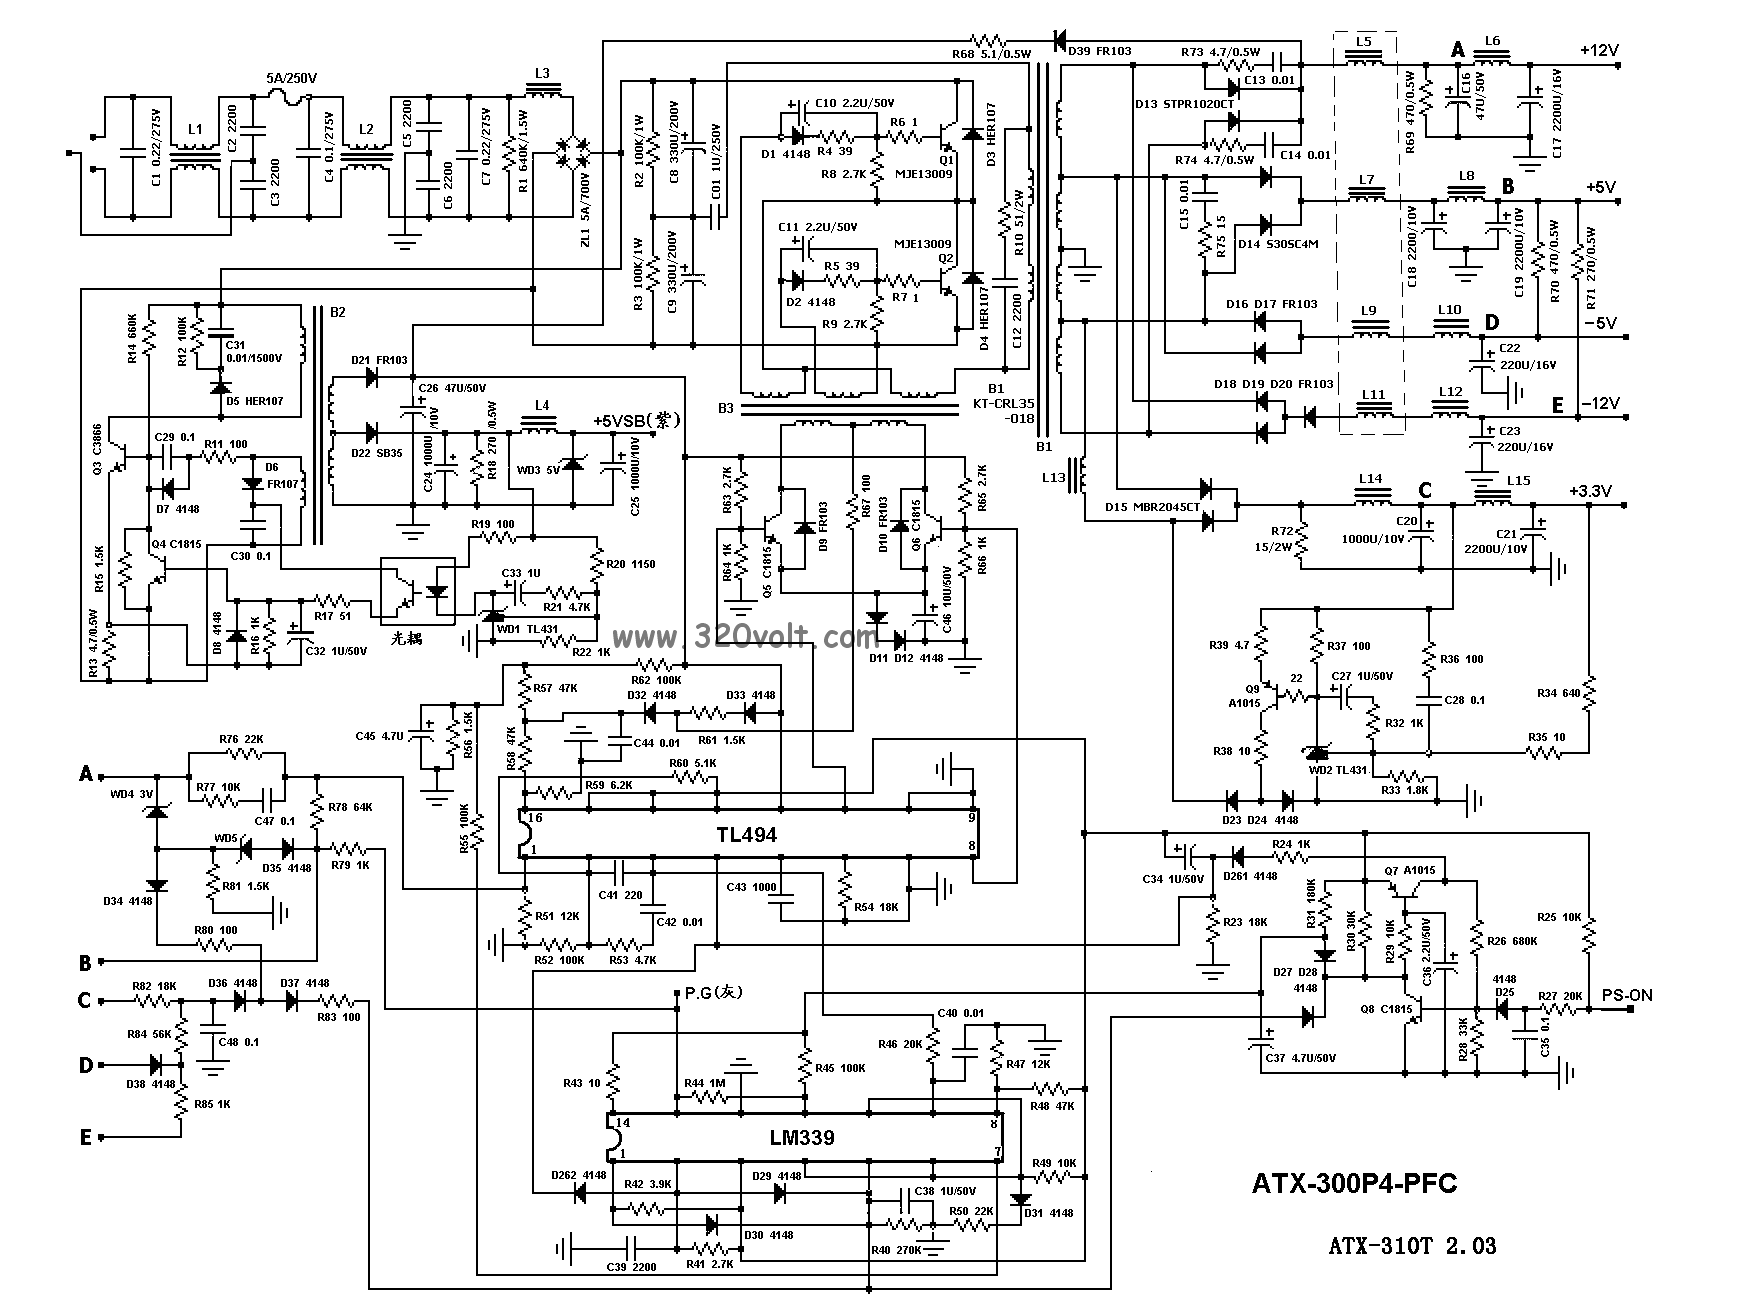 ATX Power Supply Schematic http://www.badcaps.net/forum/showthread.php?t=21586